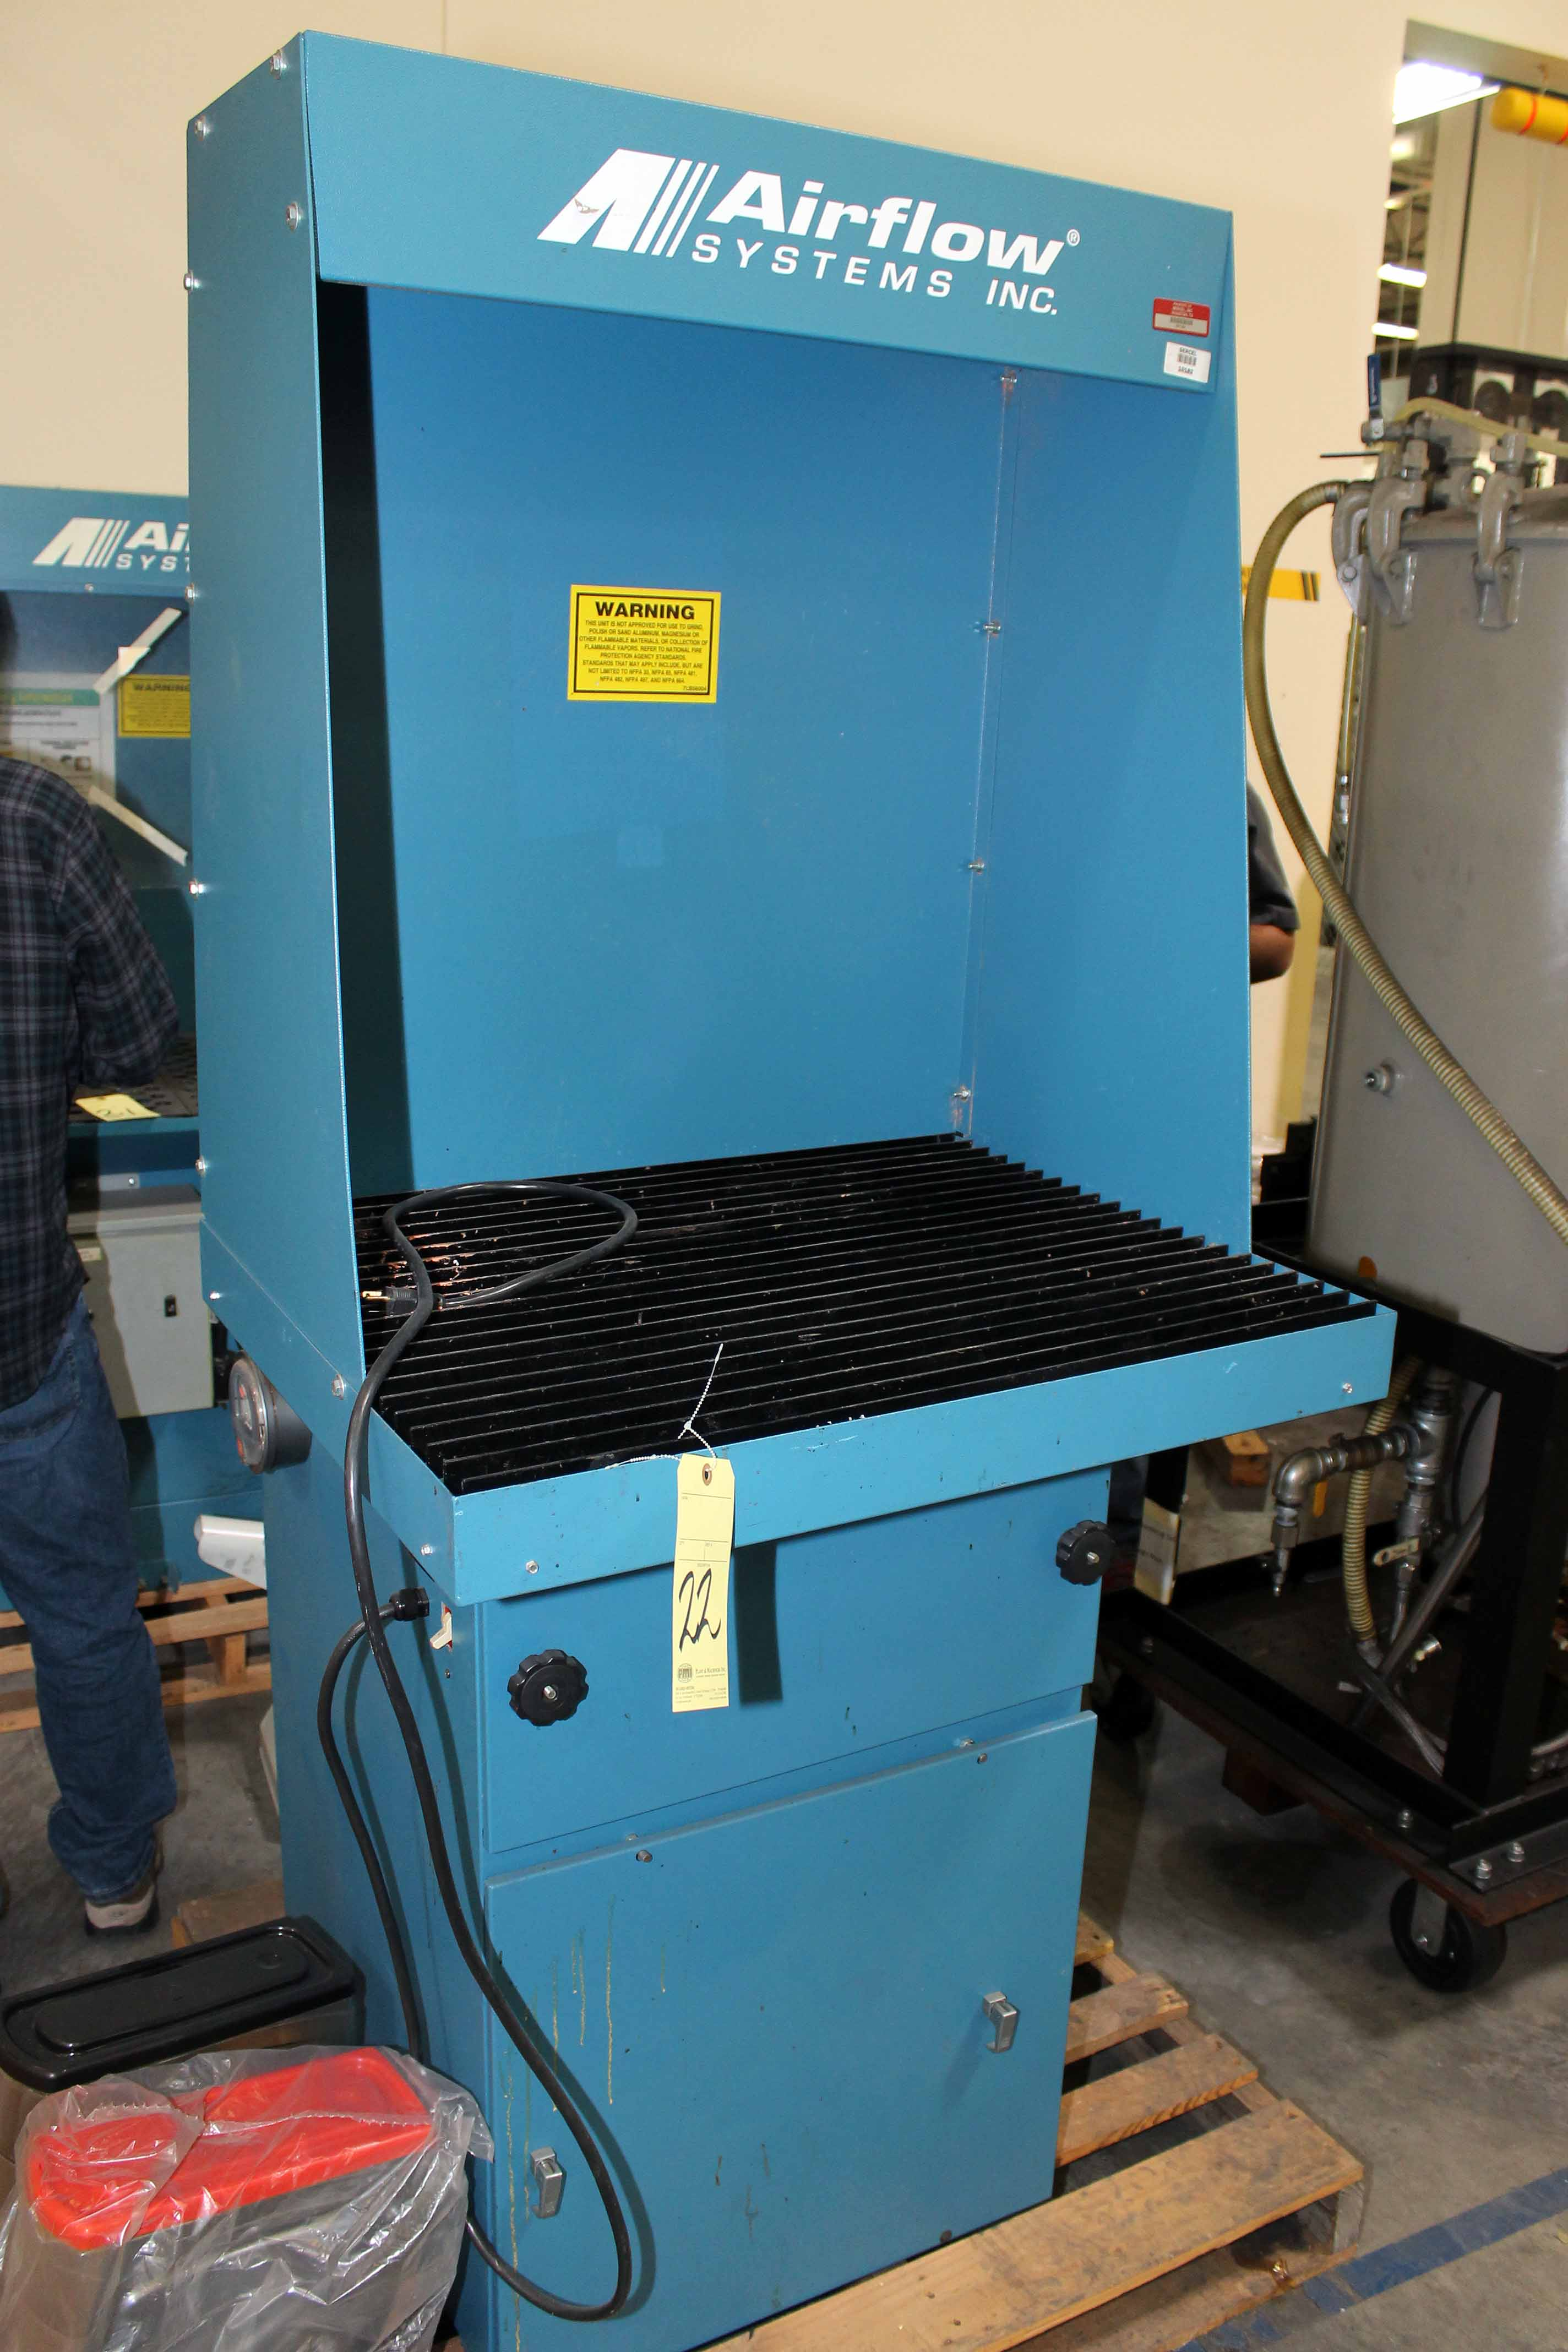 Lot 22 - DOWNDRAFT WORKBENCH, AIRFLOW SYSTEMS, 115 v., sgl. phase (Location 1 - Techway)